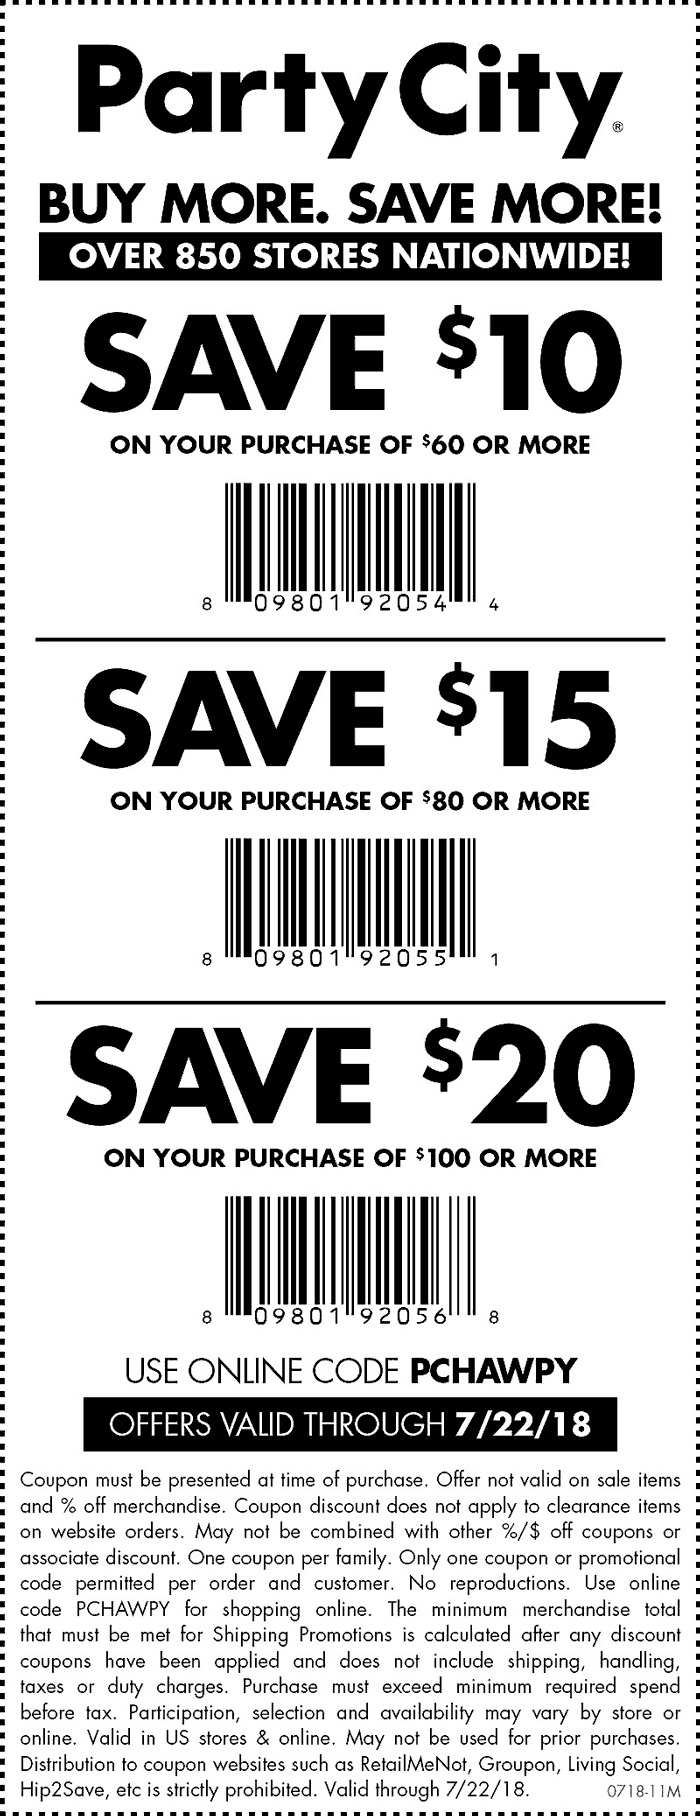 PartyCity.com Promo Coupon $10 off $60 & more at Party City, or online via promo code PCHAWPY